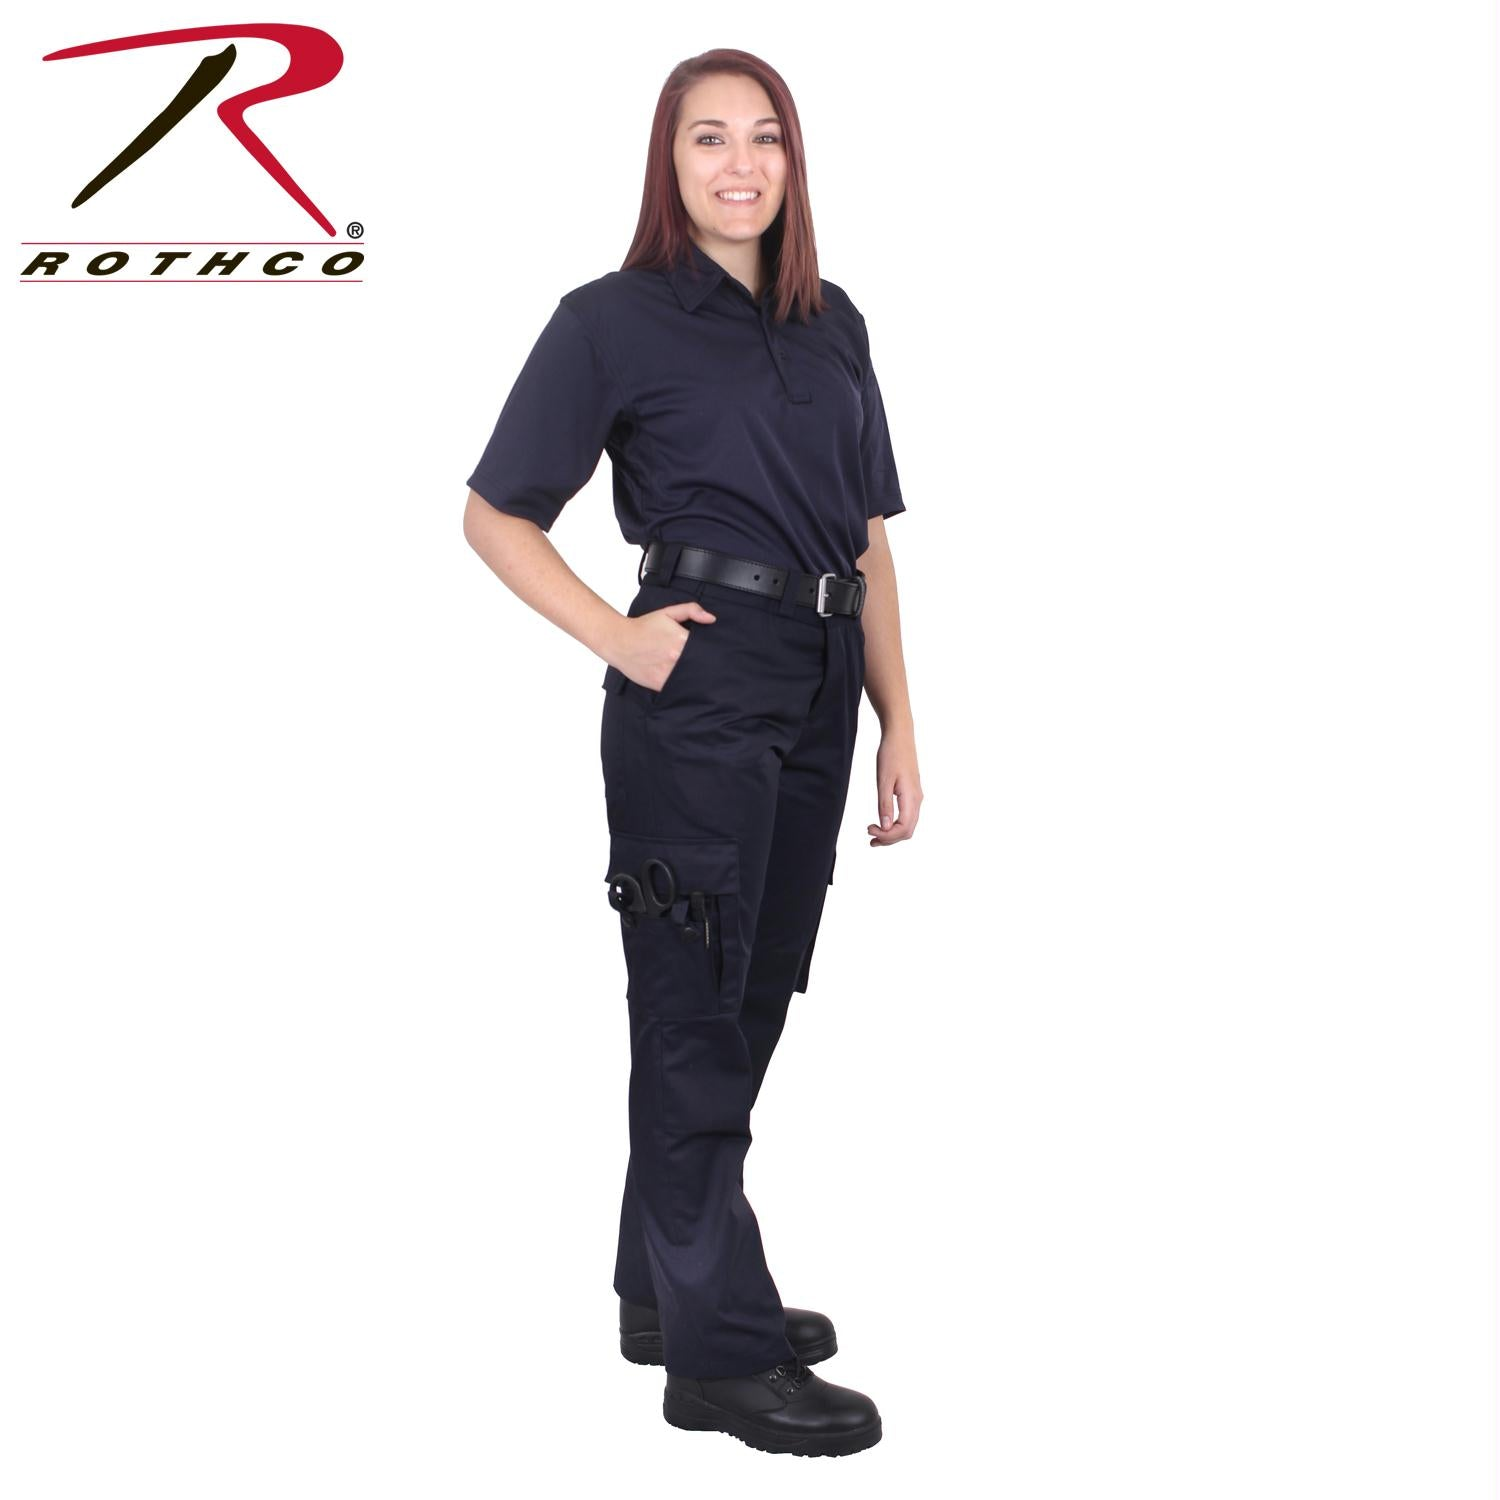 Rothco Women's EMT Pants - Midnight Navy Blue / 16